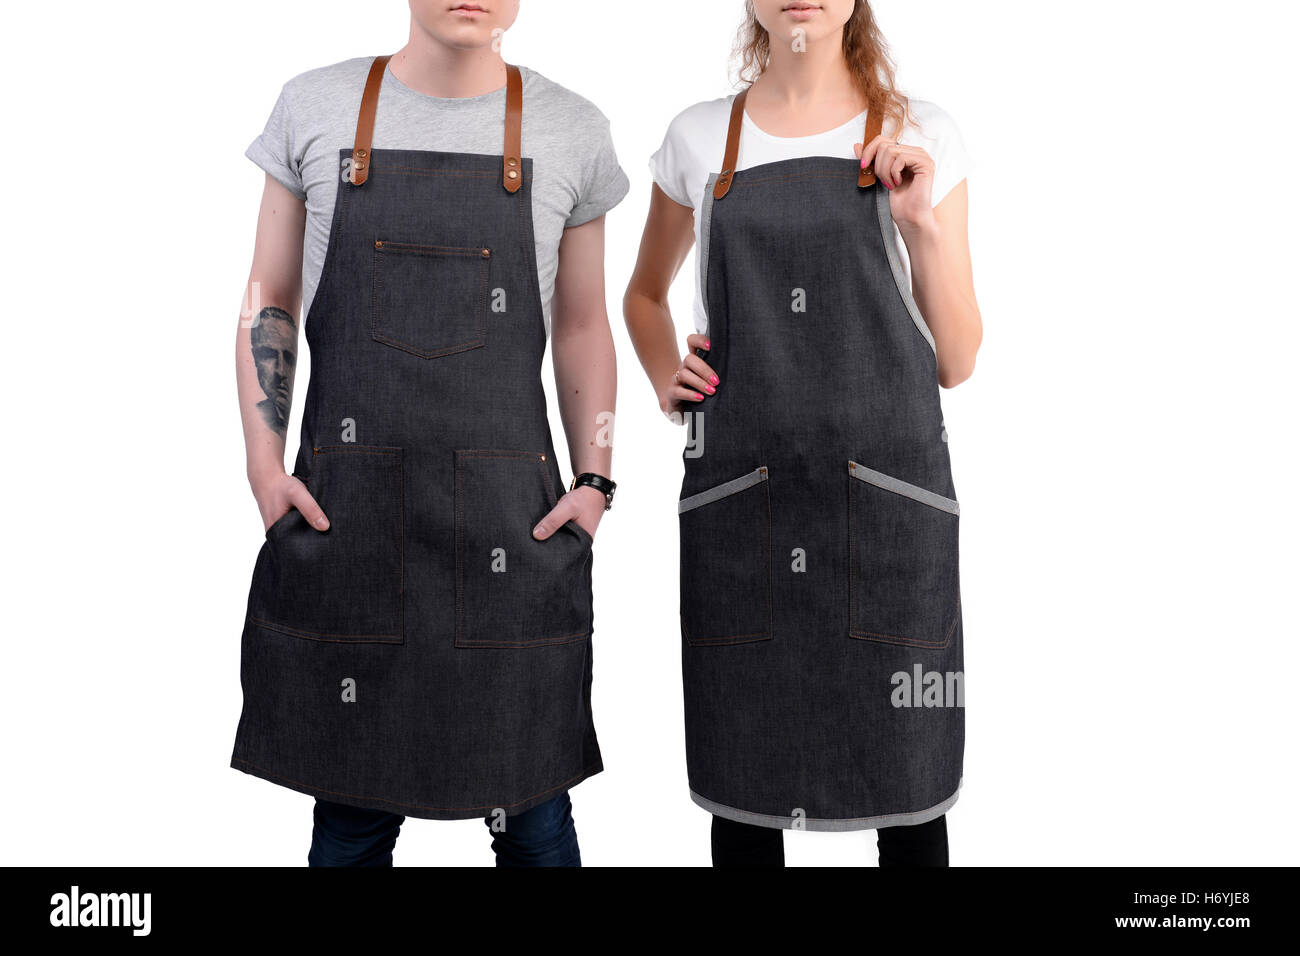 Young chefs or waiters man and woman posing, wearing aprons isolated on white background. - Stock Image